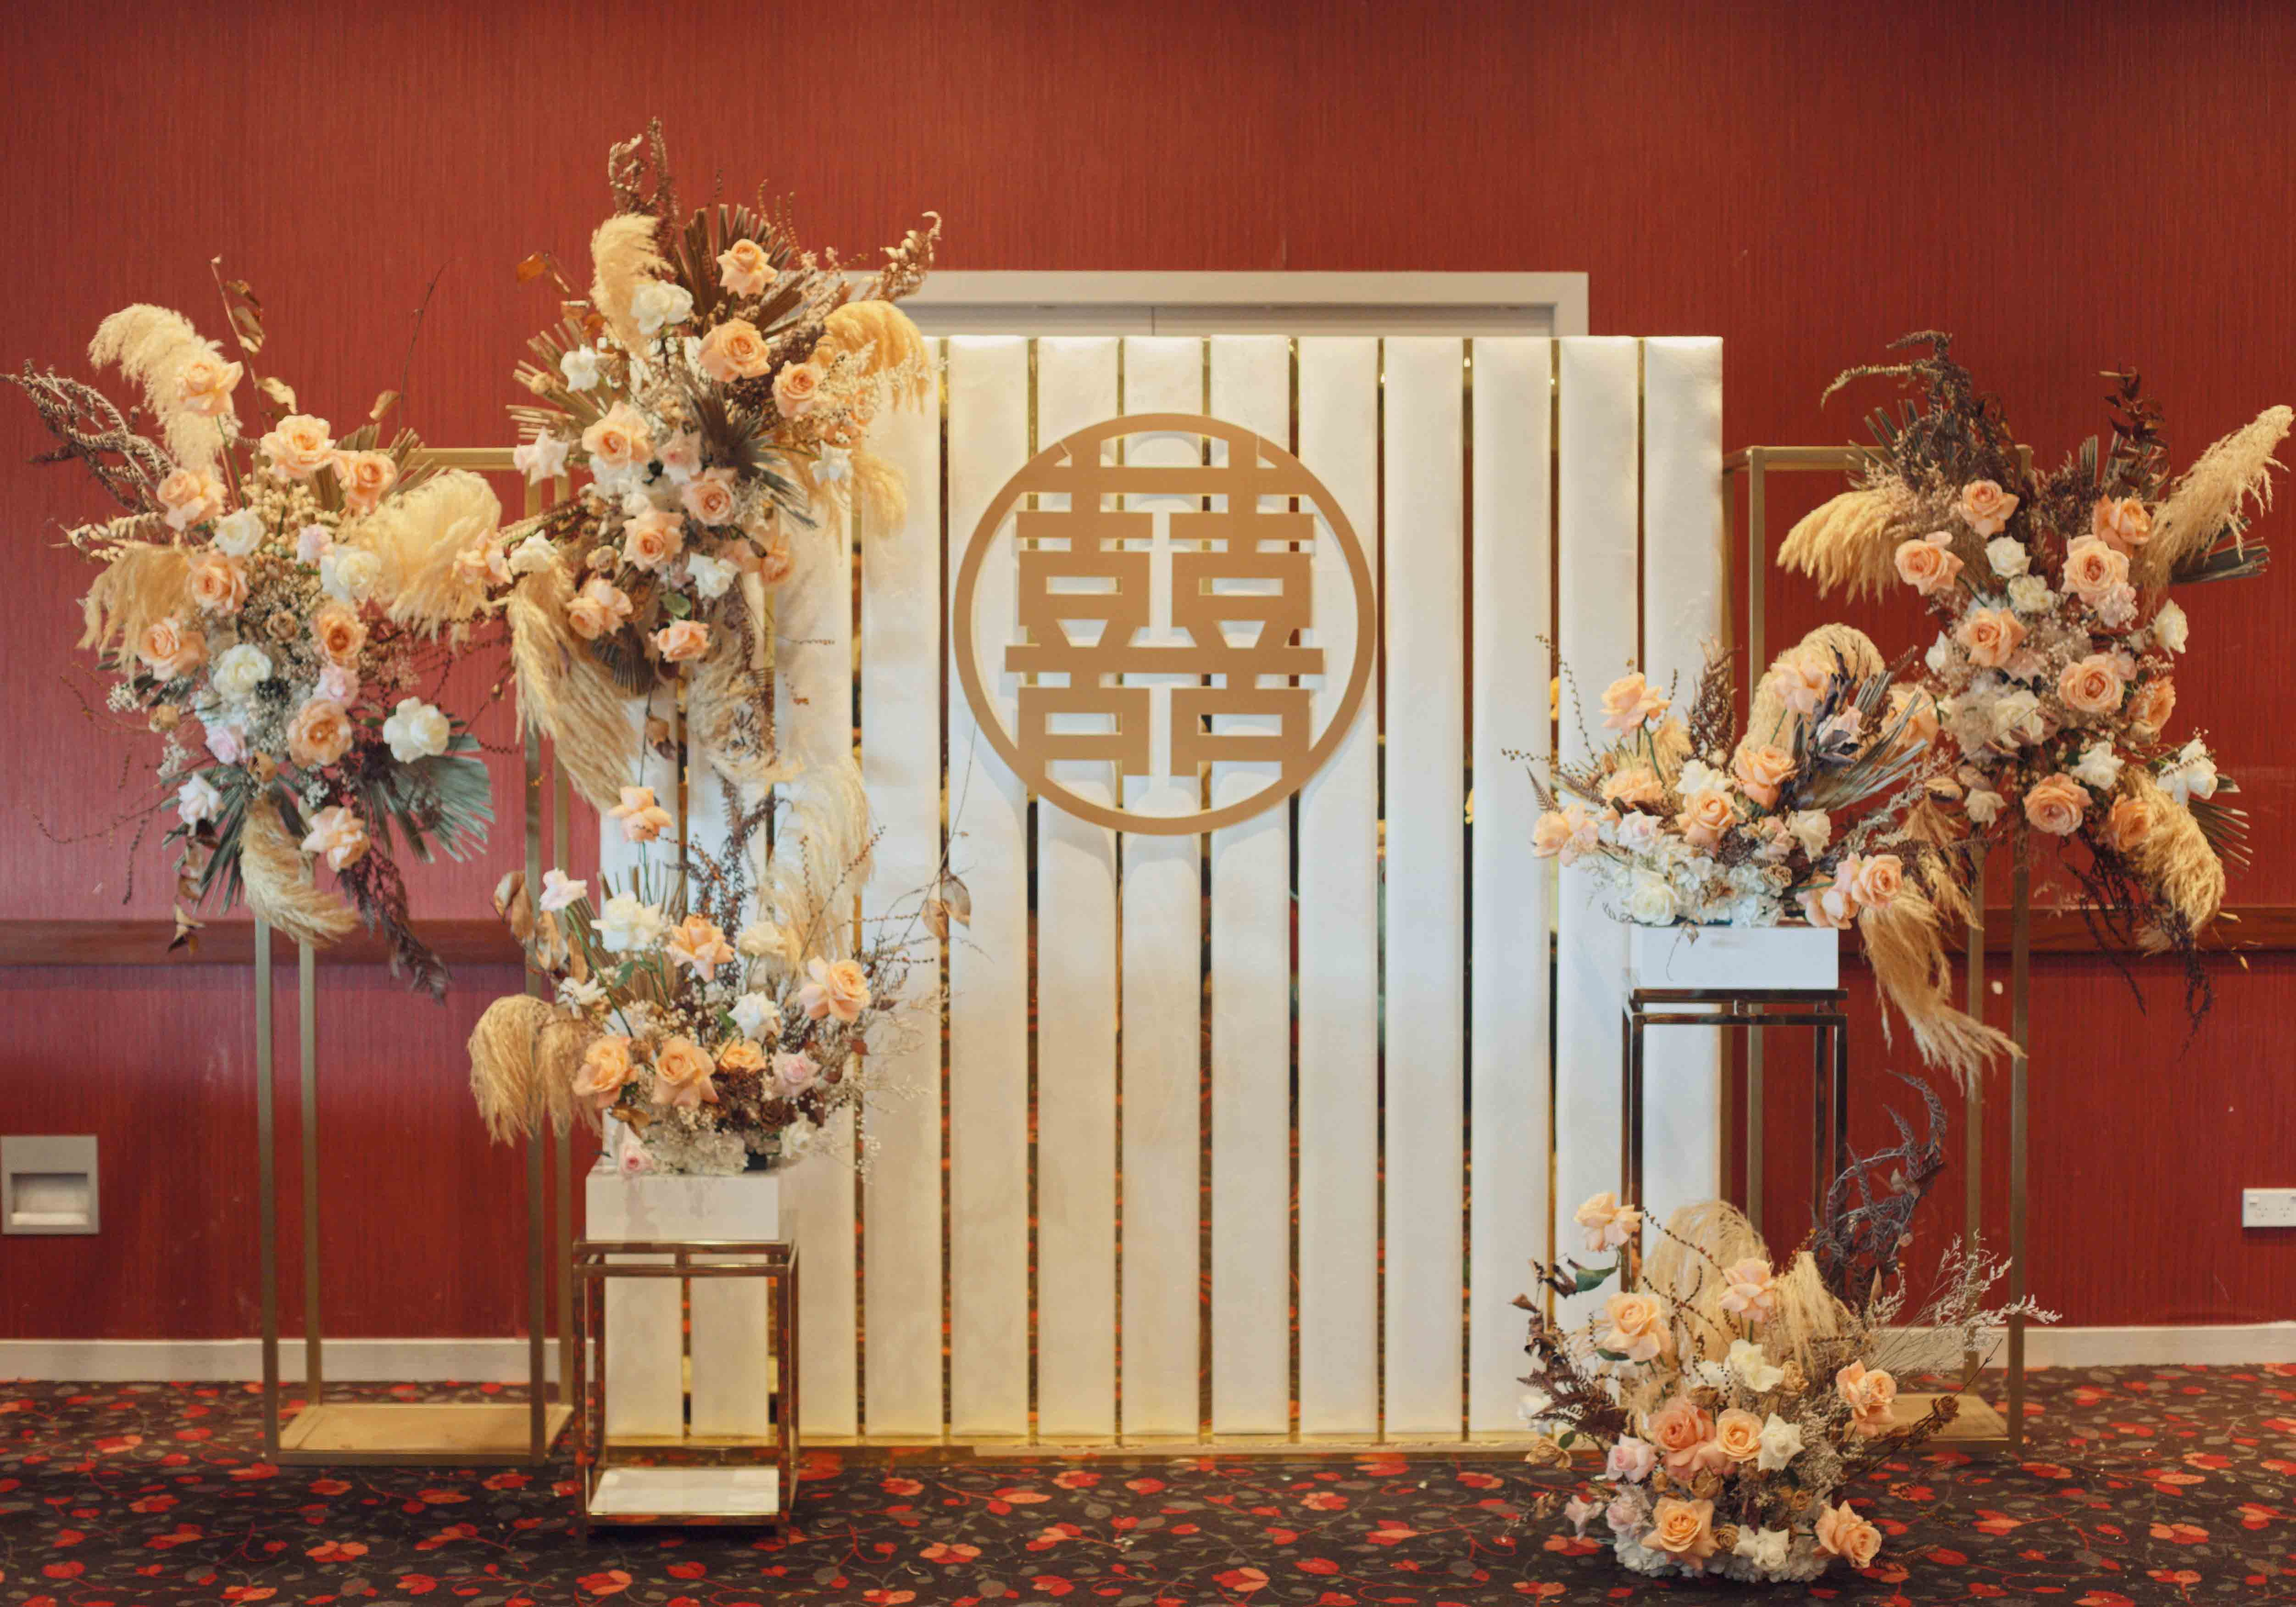 Twist on a traditional wedding banquet. Styling and Hire by Luxe Dream / Florals by Luxe Dream Floral Studio